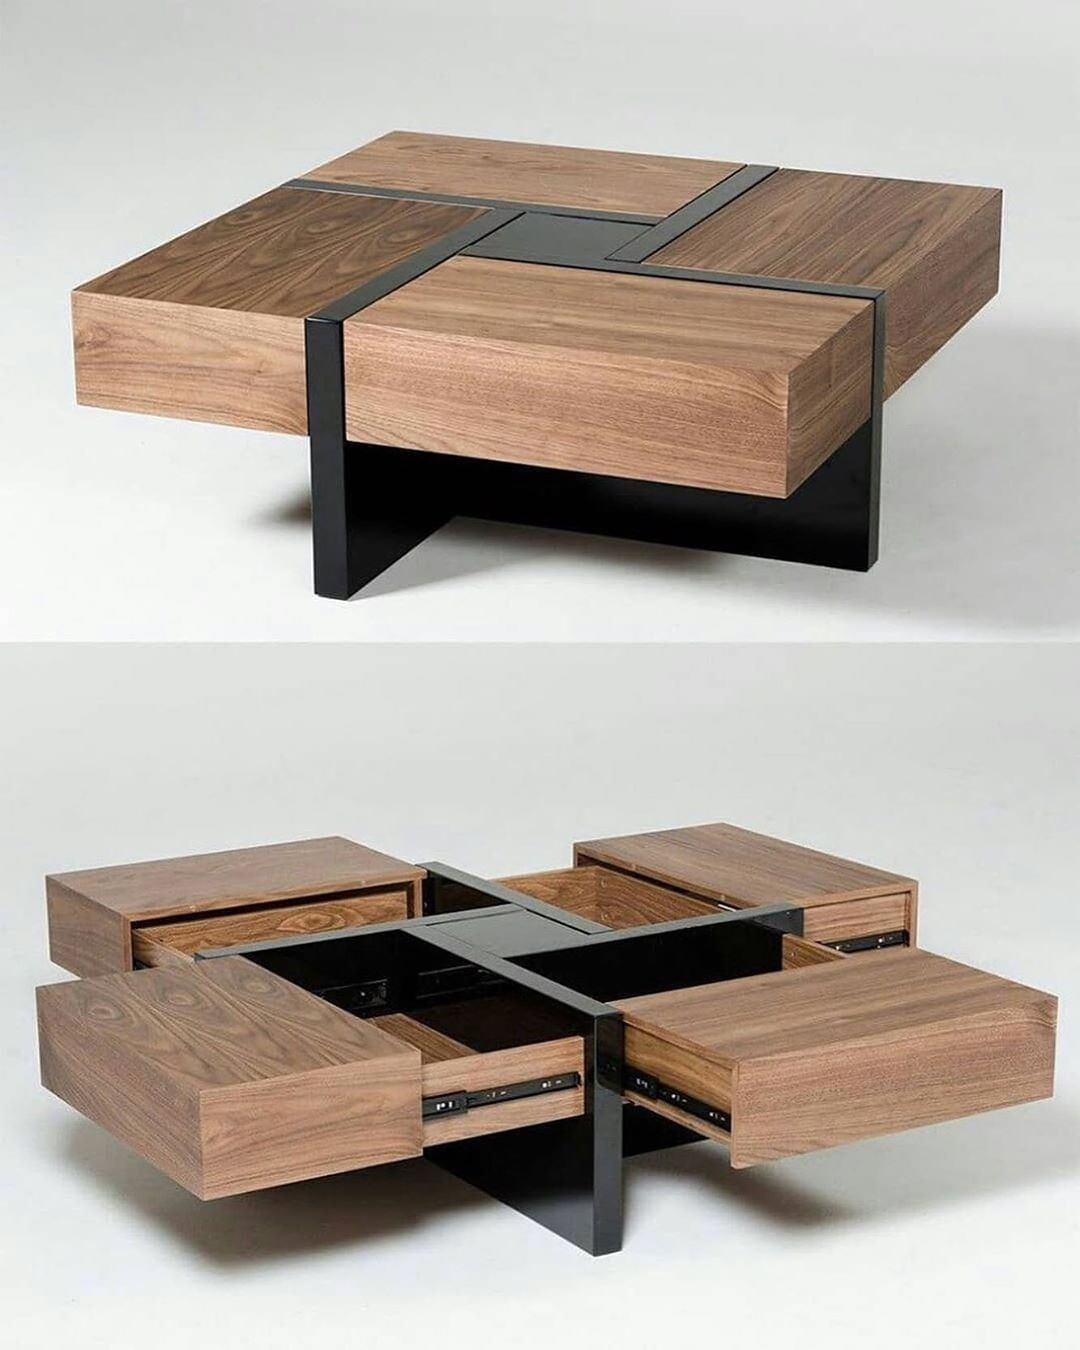 Woodworking For Beginners Woodworking Plans Woodworking Tools Are You New To Woodwo Tea Table Design Modern Square Coffee Table Coffee Table Design Modern [ jpg ]